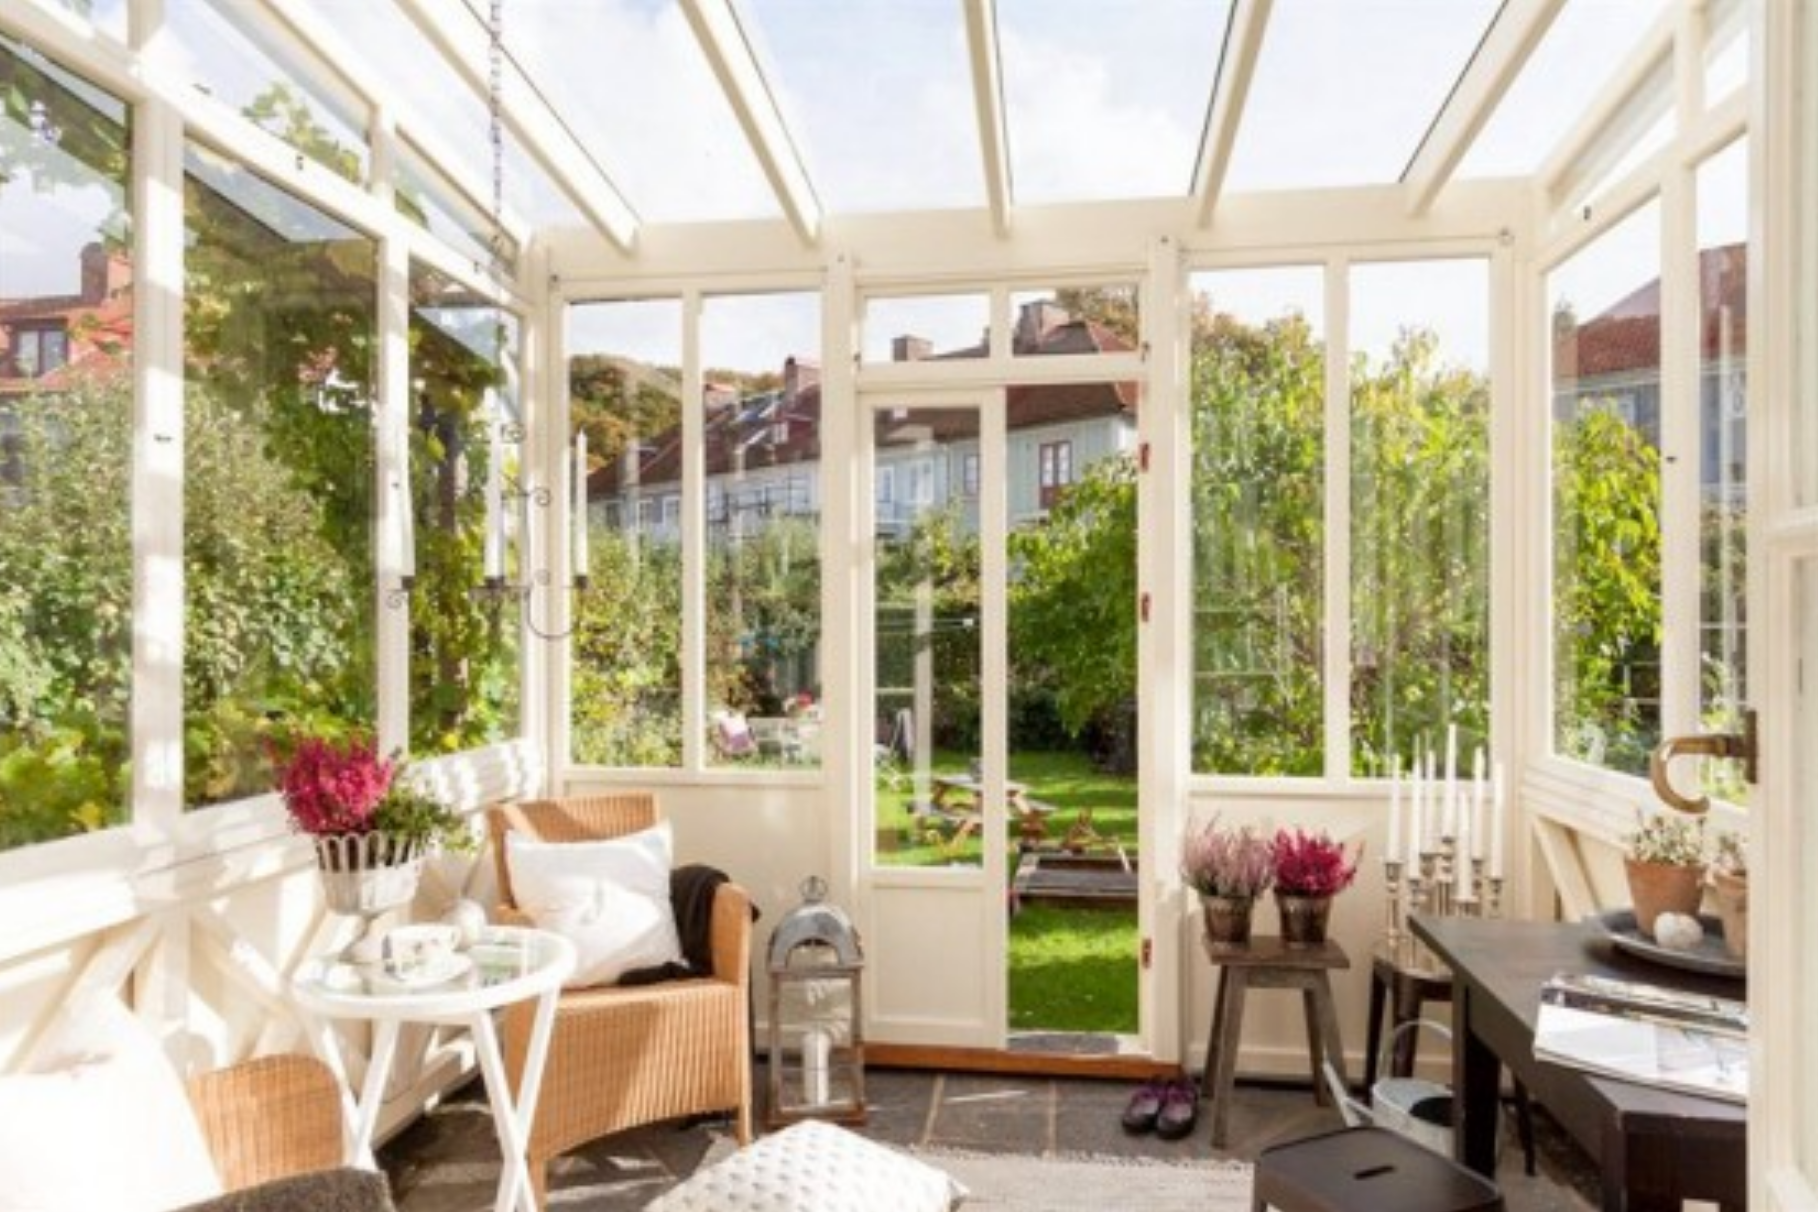 Outdoor Green Space Wicker Outdoor Rooms Sunroom Decorating Sunroom